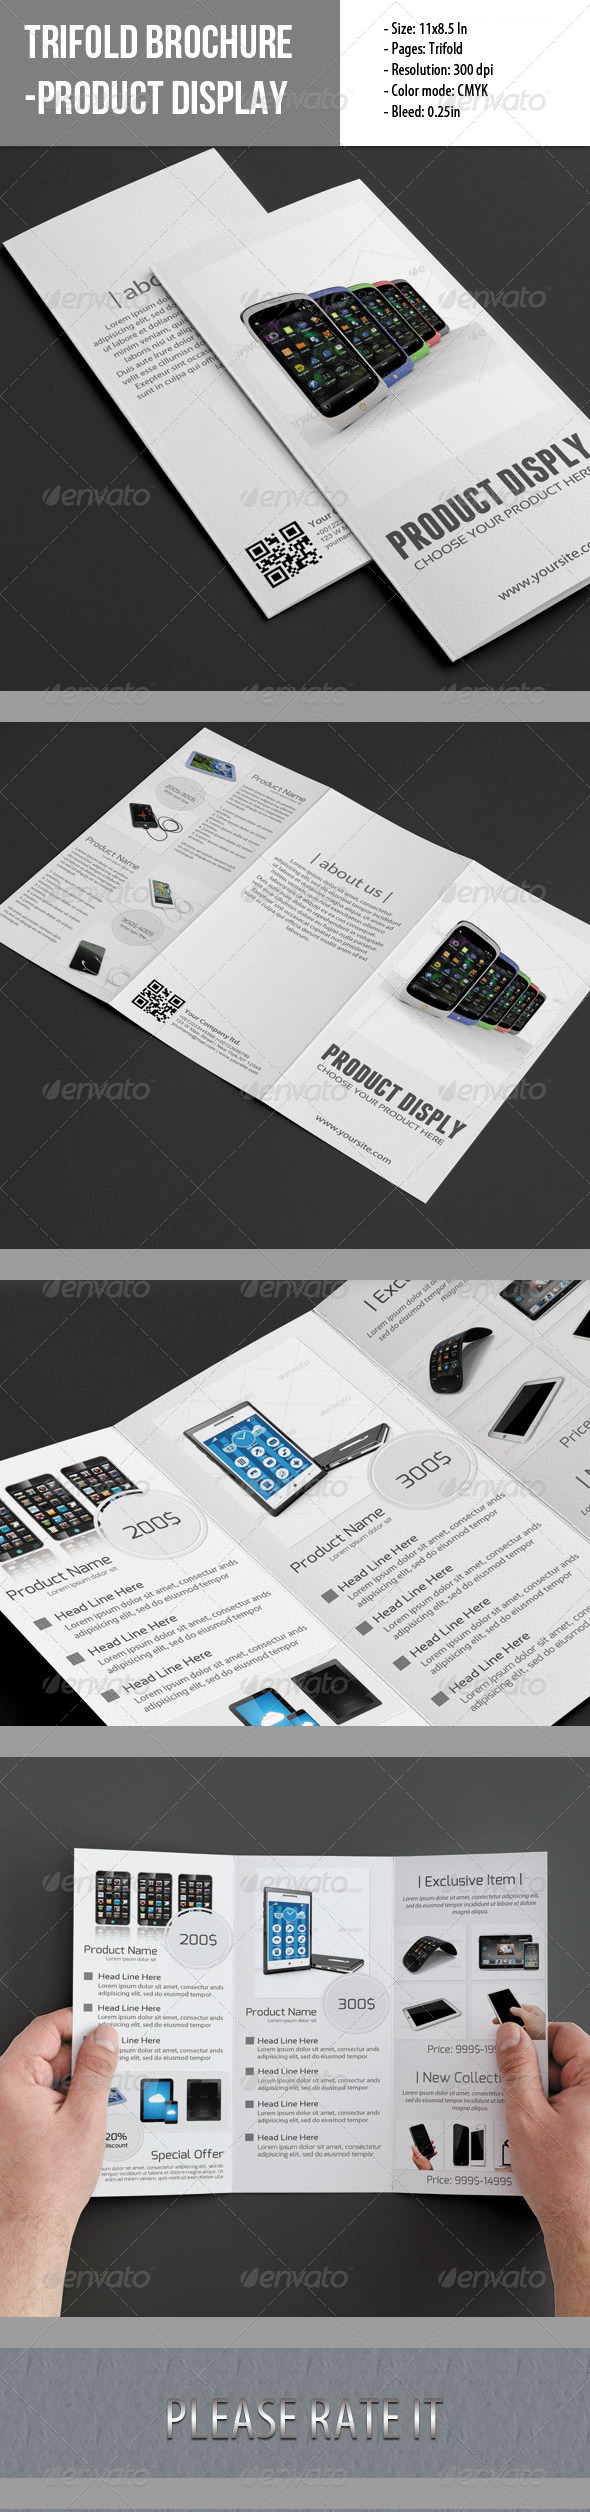 GraphicRiver Trifold Brochure For Product Display 4993961